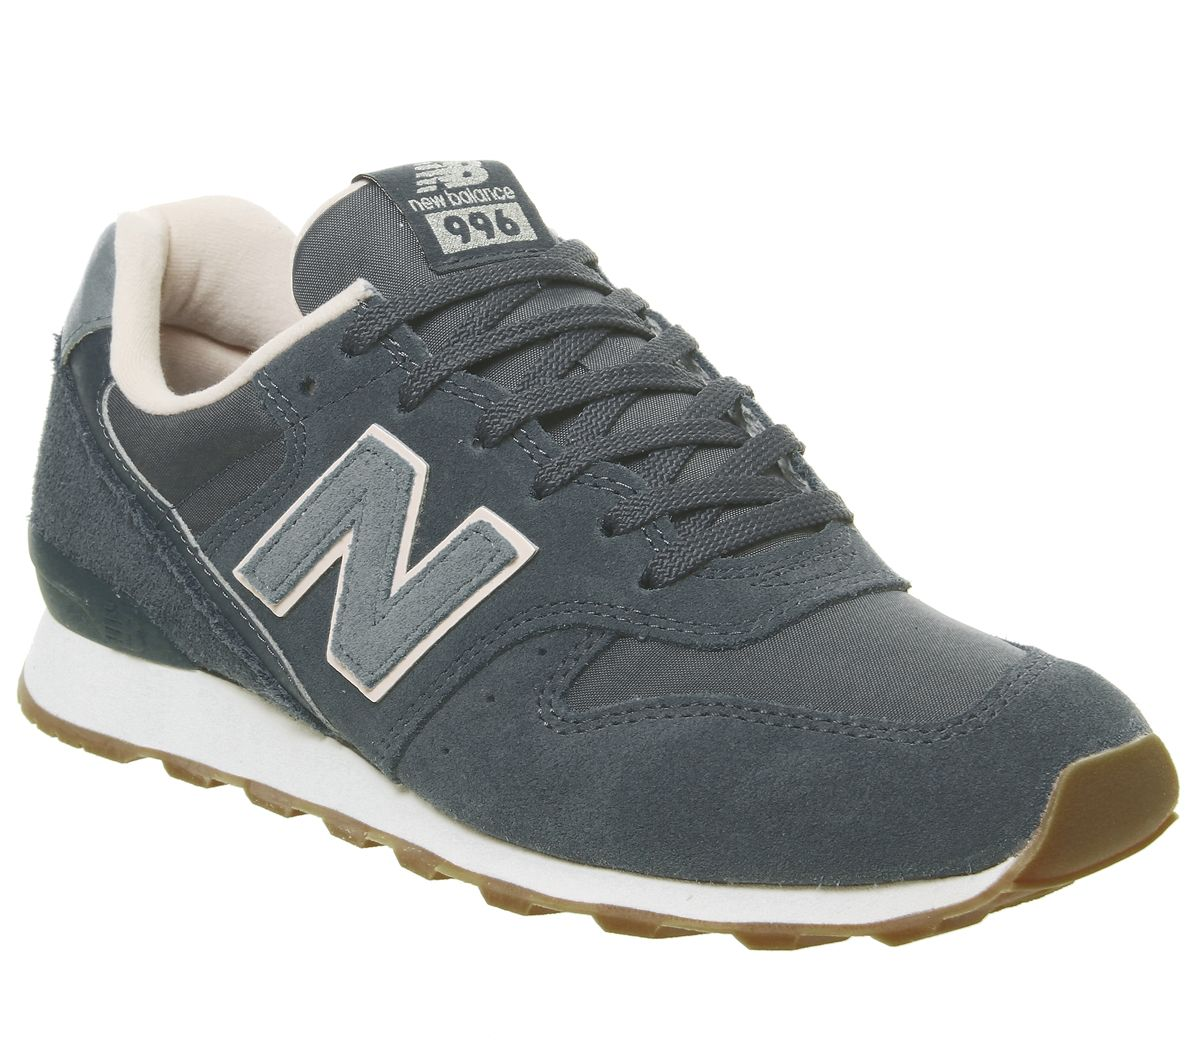 f060b579c Details about Womens New Balance 996 Trainers Orion Blue Pale Blush  Exclusive Trainers Shoes